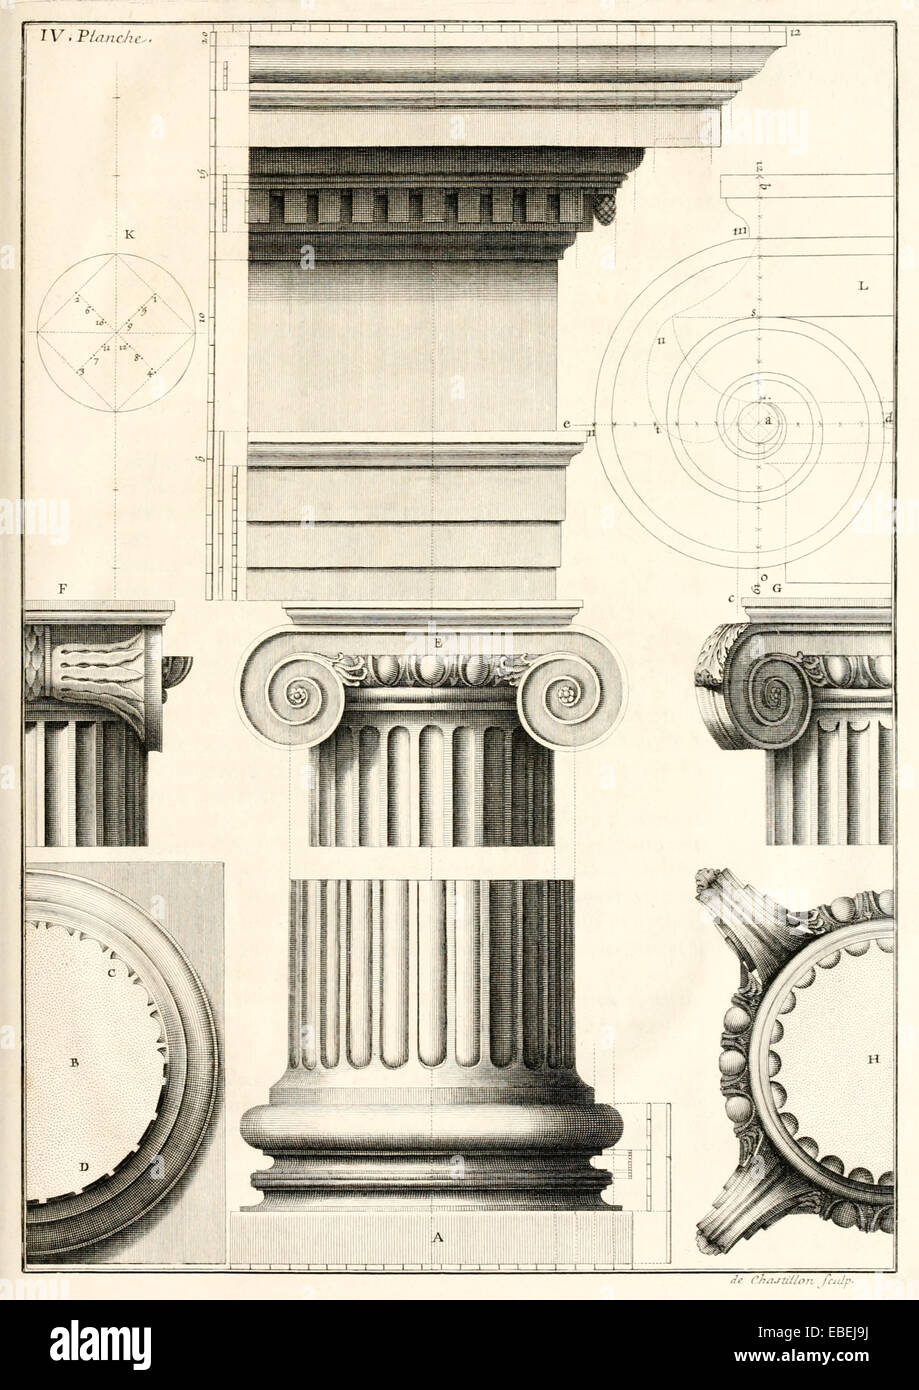 Ionic order by Claude Perrault, French Renaissance architect illustration. See description for more information. - Stock Image